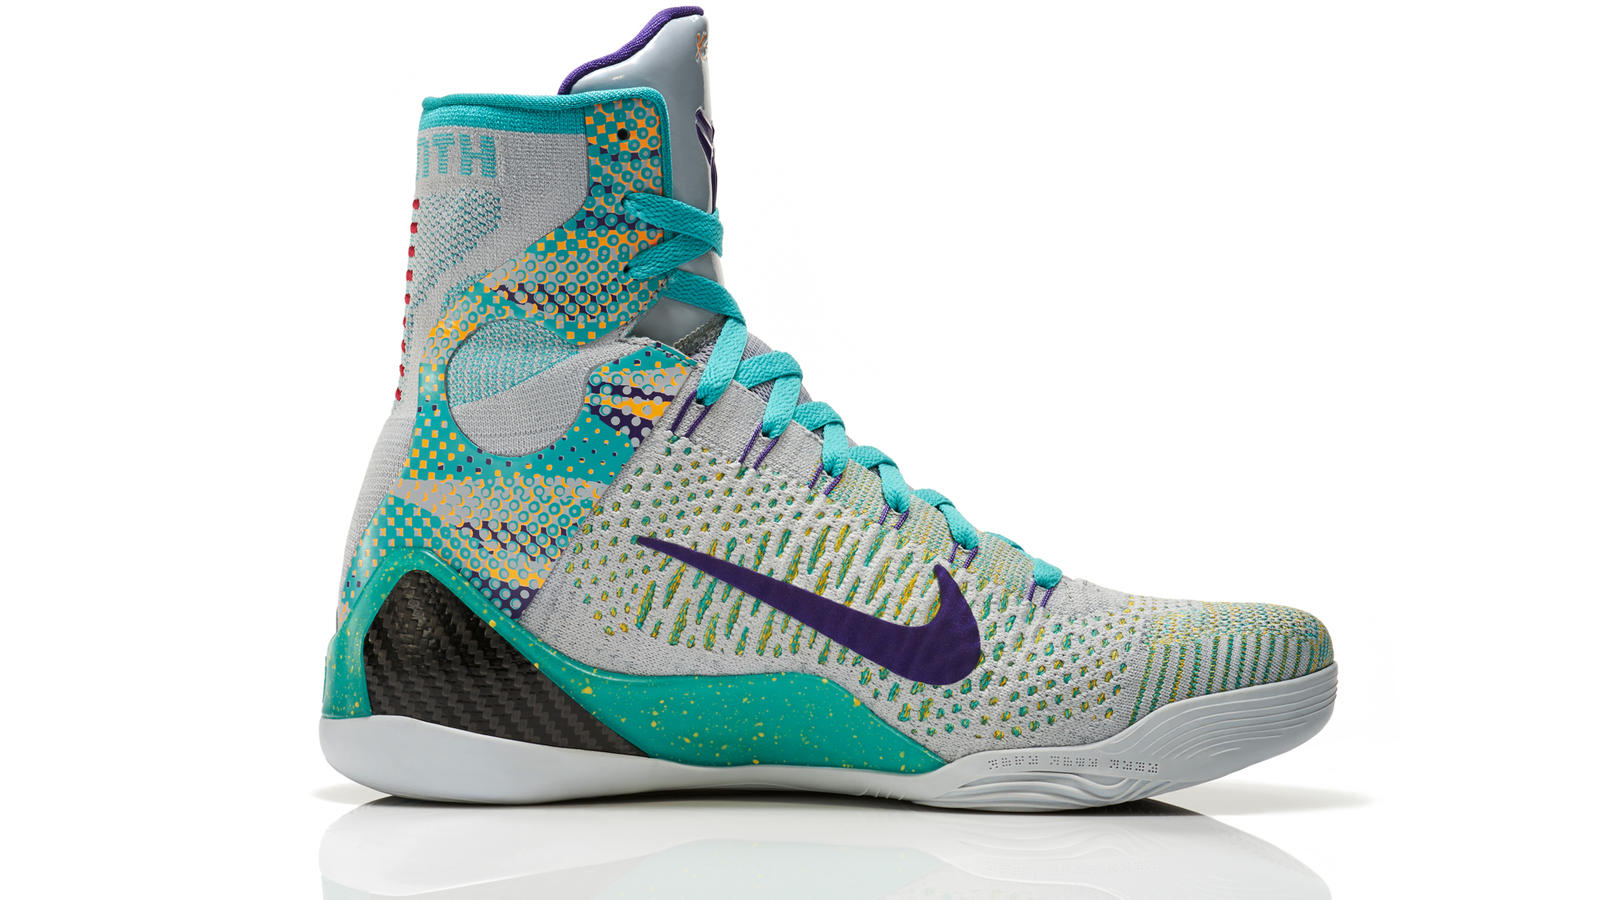 kobe_9_unleashed_005_medial_0294_fb